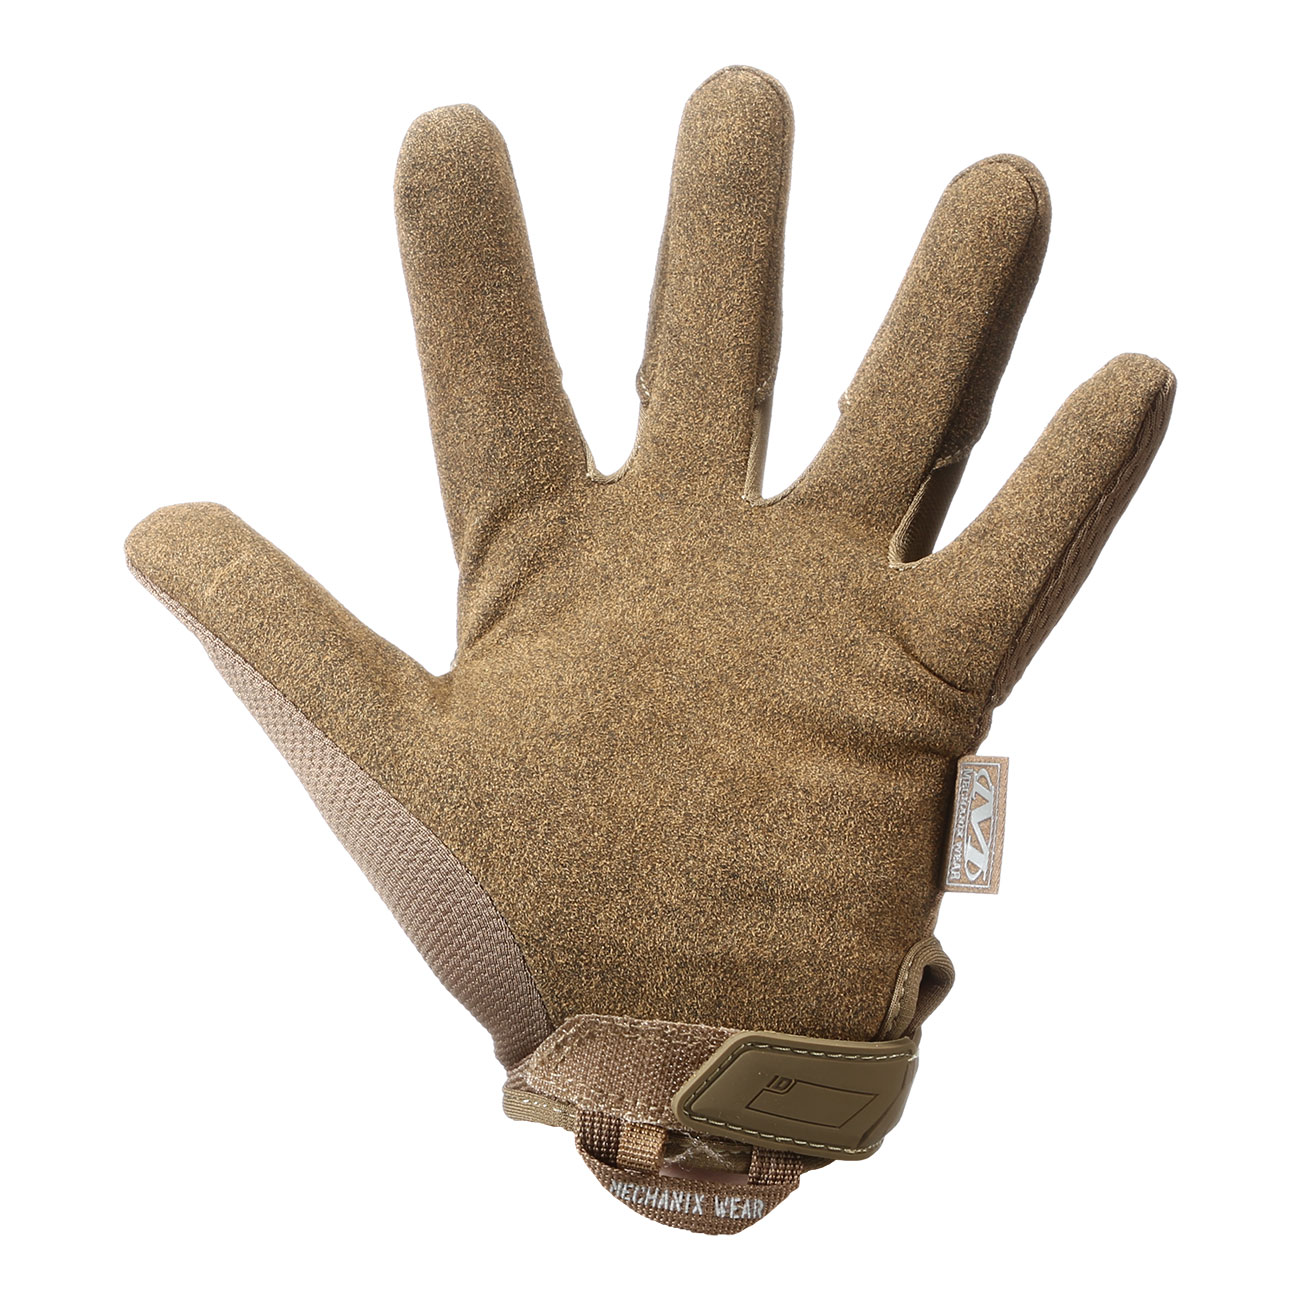 Mechanix Wear Original Handschuhe coyote 1